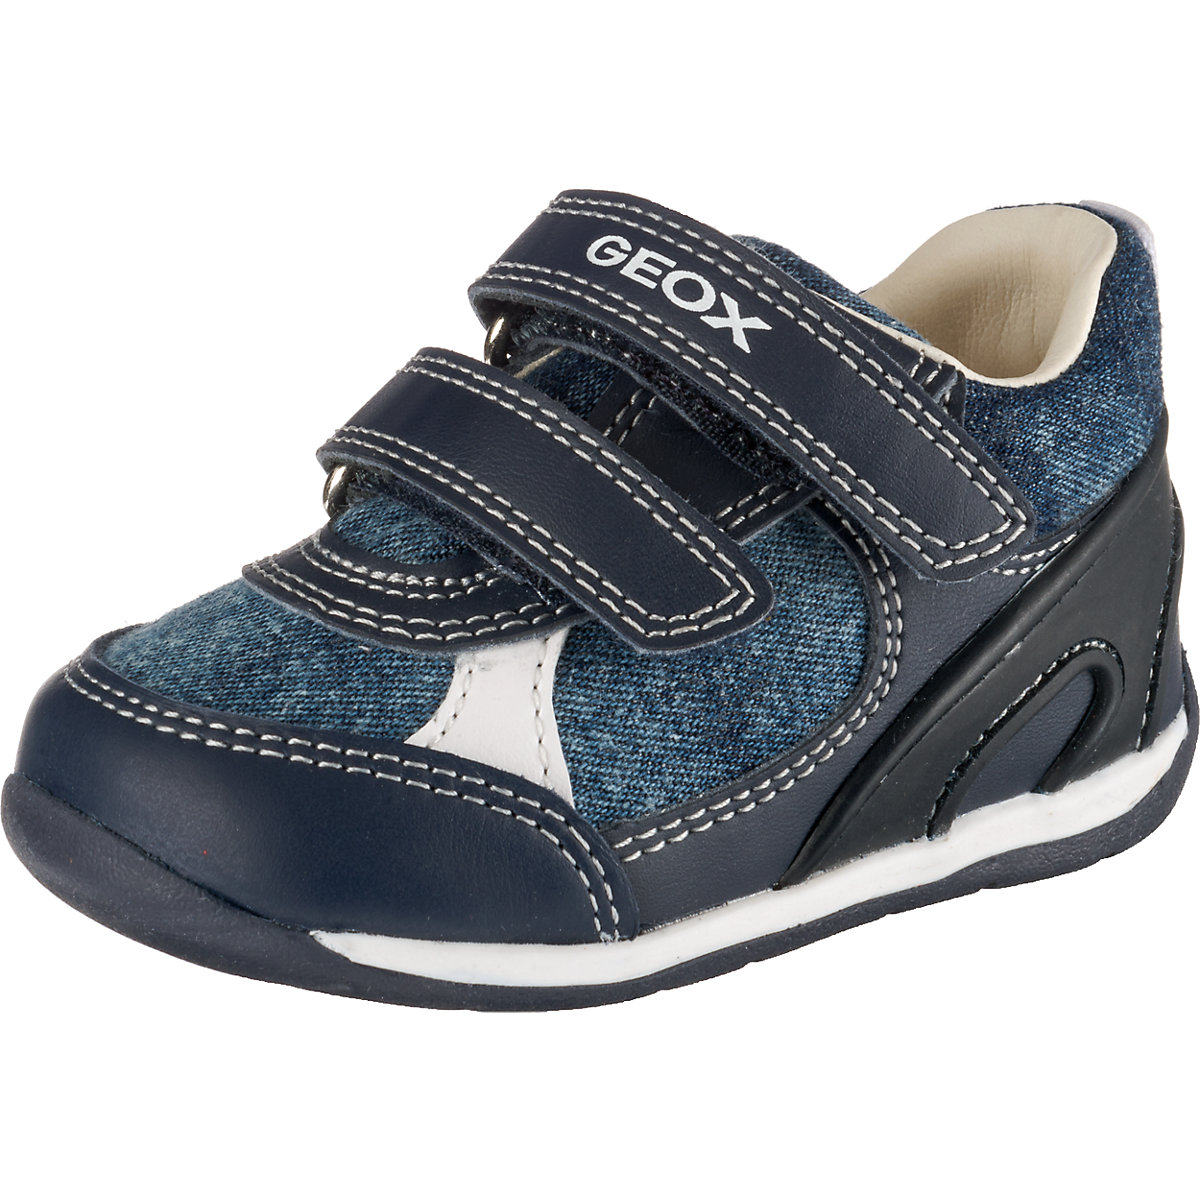 GEOX Kids\' Sneakers 10185274 sport shoes for boys and girls MTpromo geox kids sneakers 10185324 sport shoes for boys and girls mtpromo